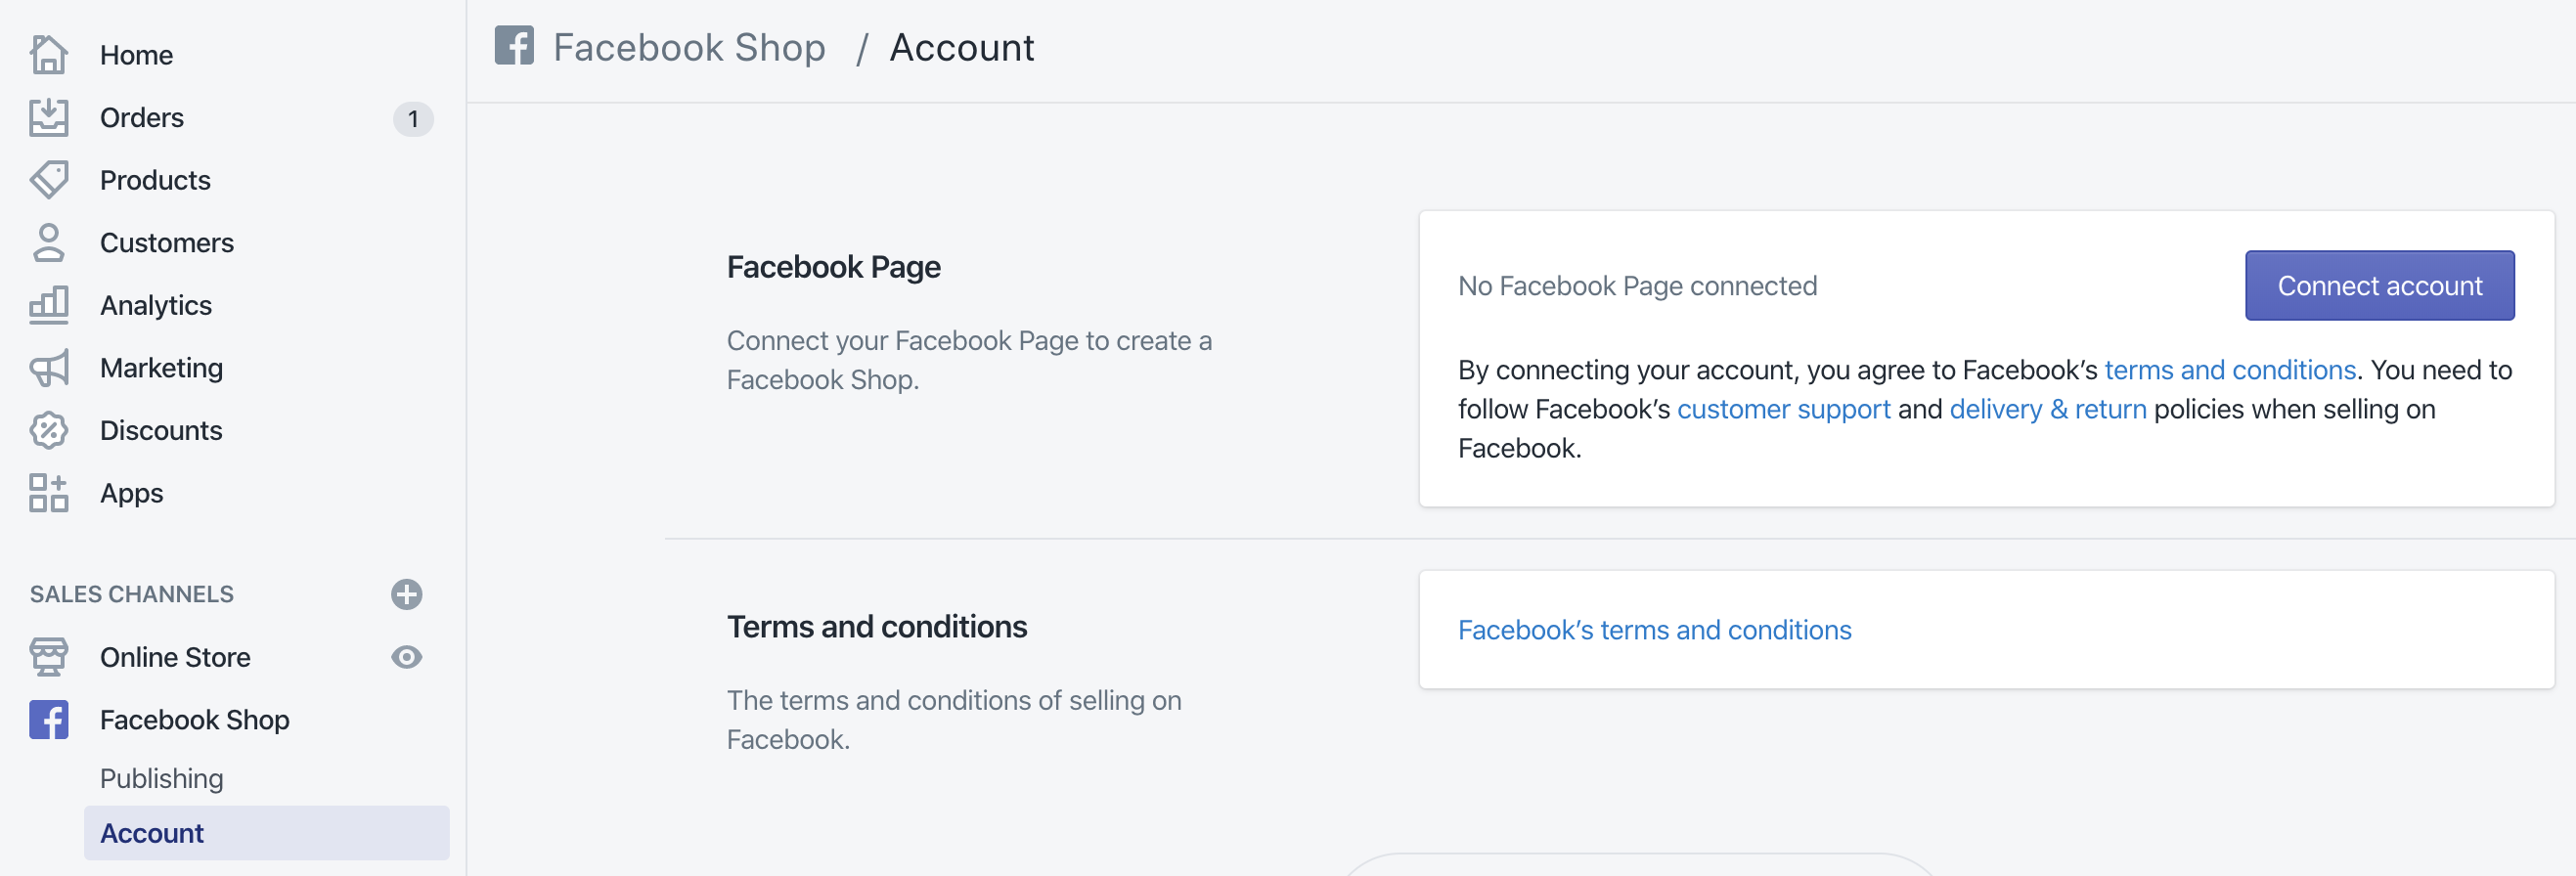 Shopify Facebook Shop Setup